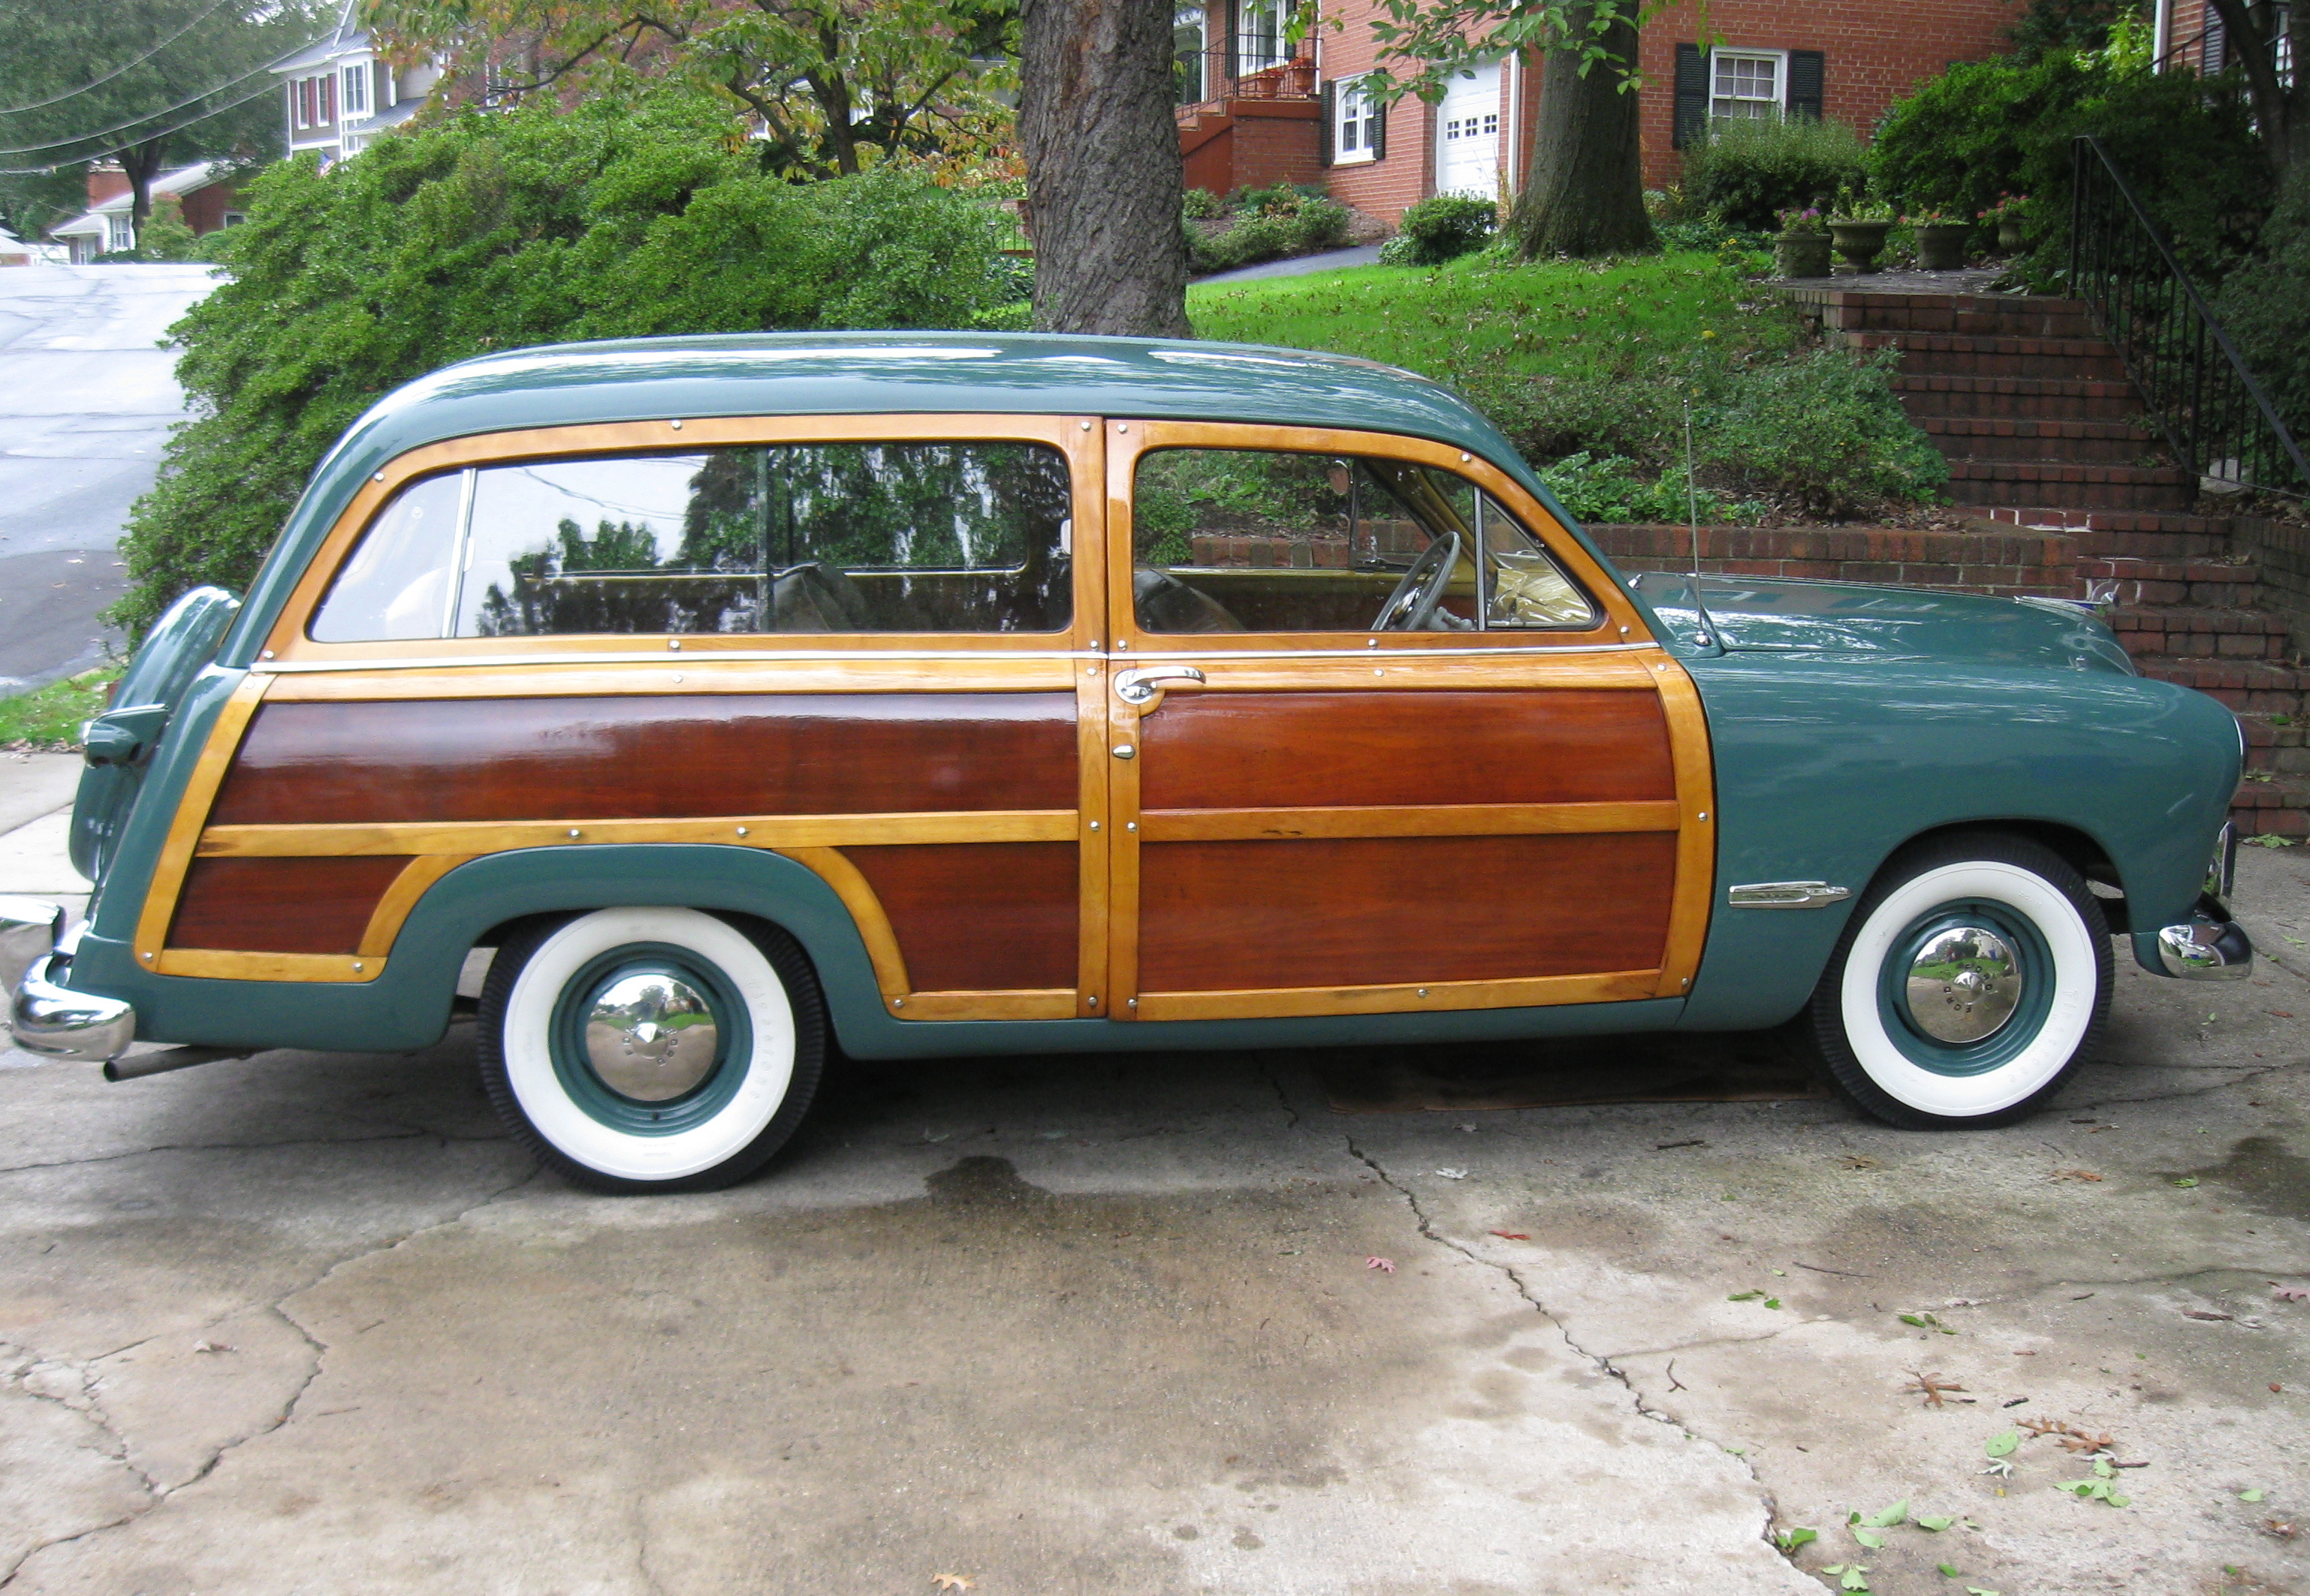 Vernparker Com Street Dreams The Latest 1949 Ford Station Wagon